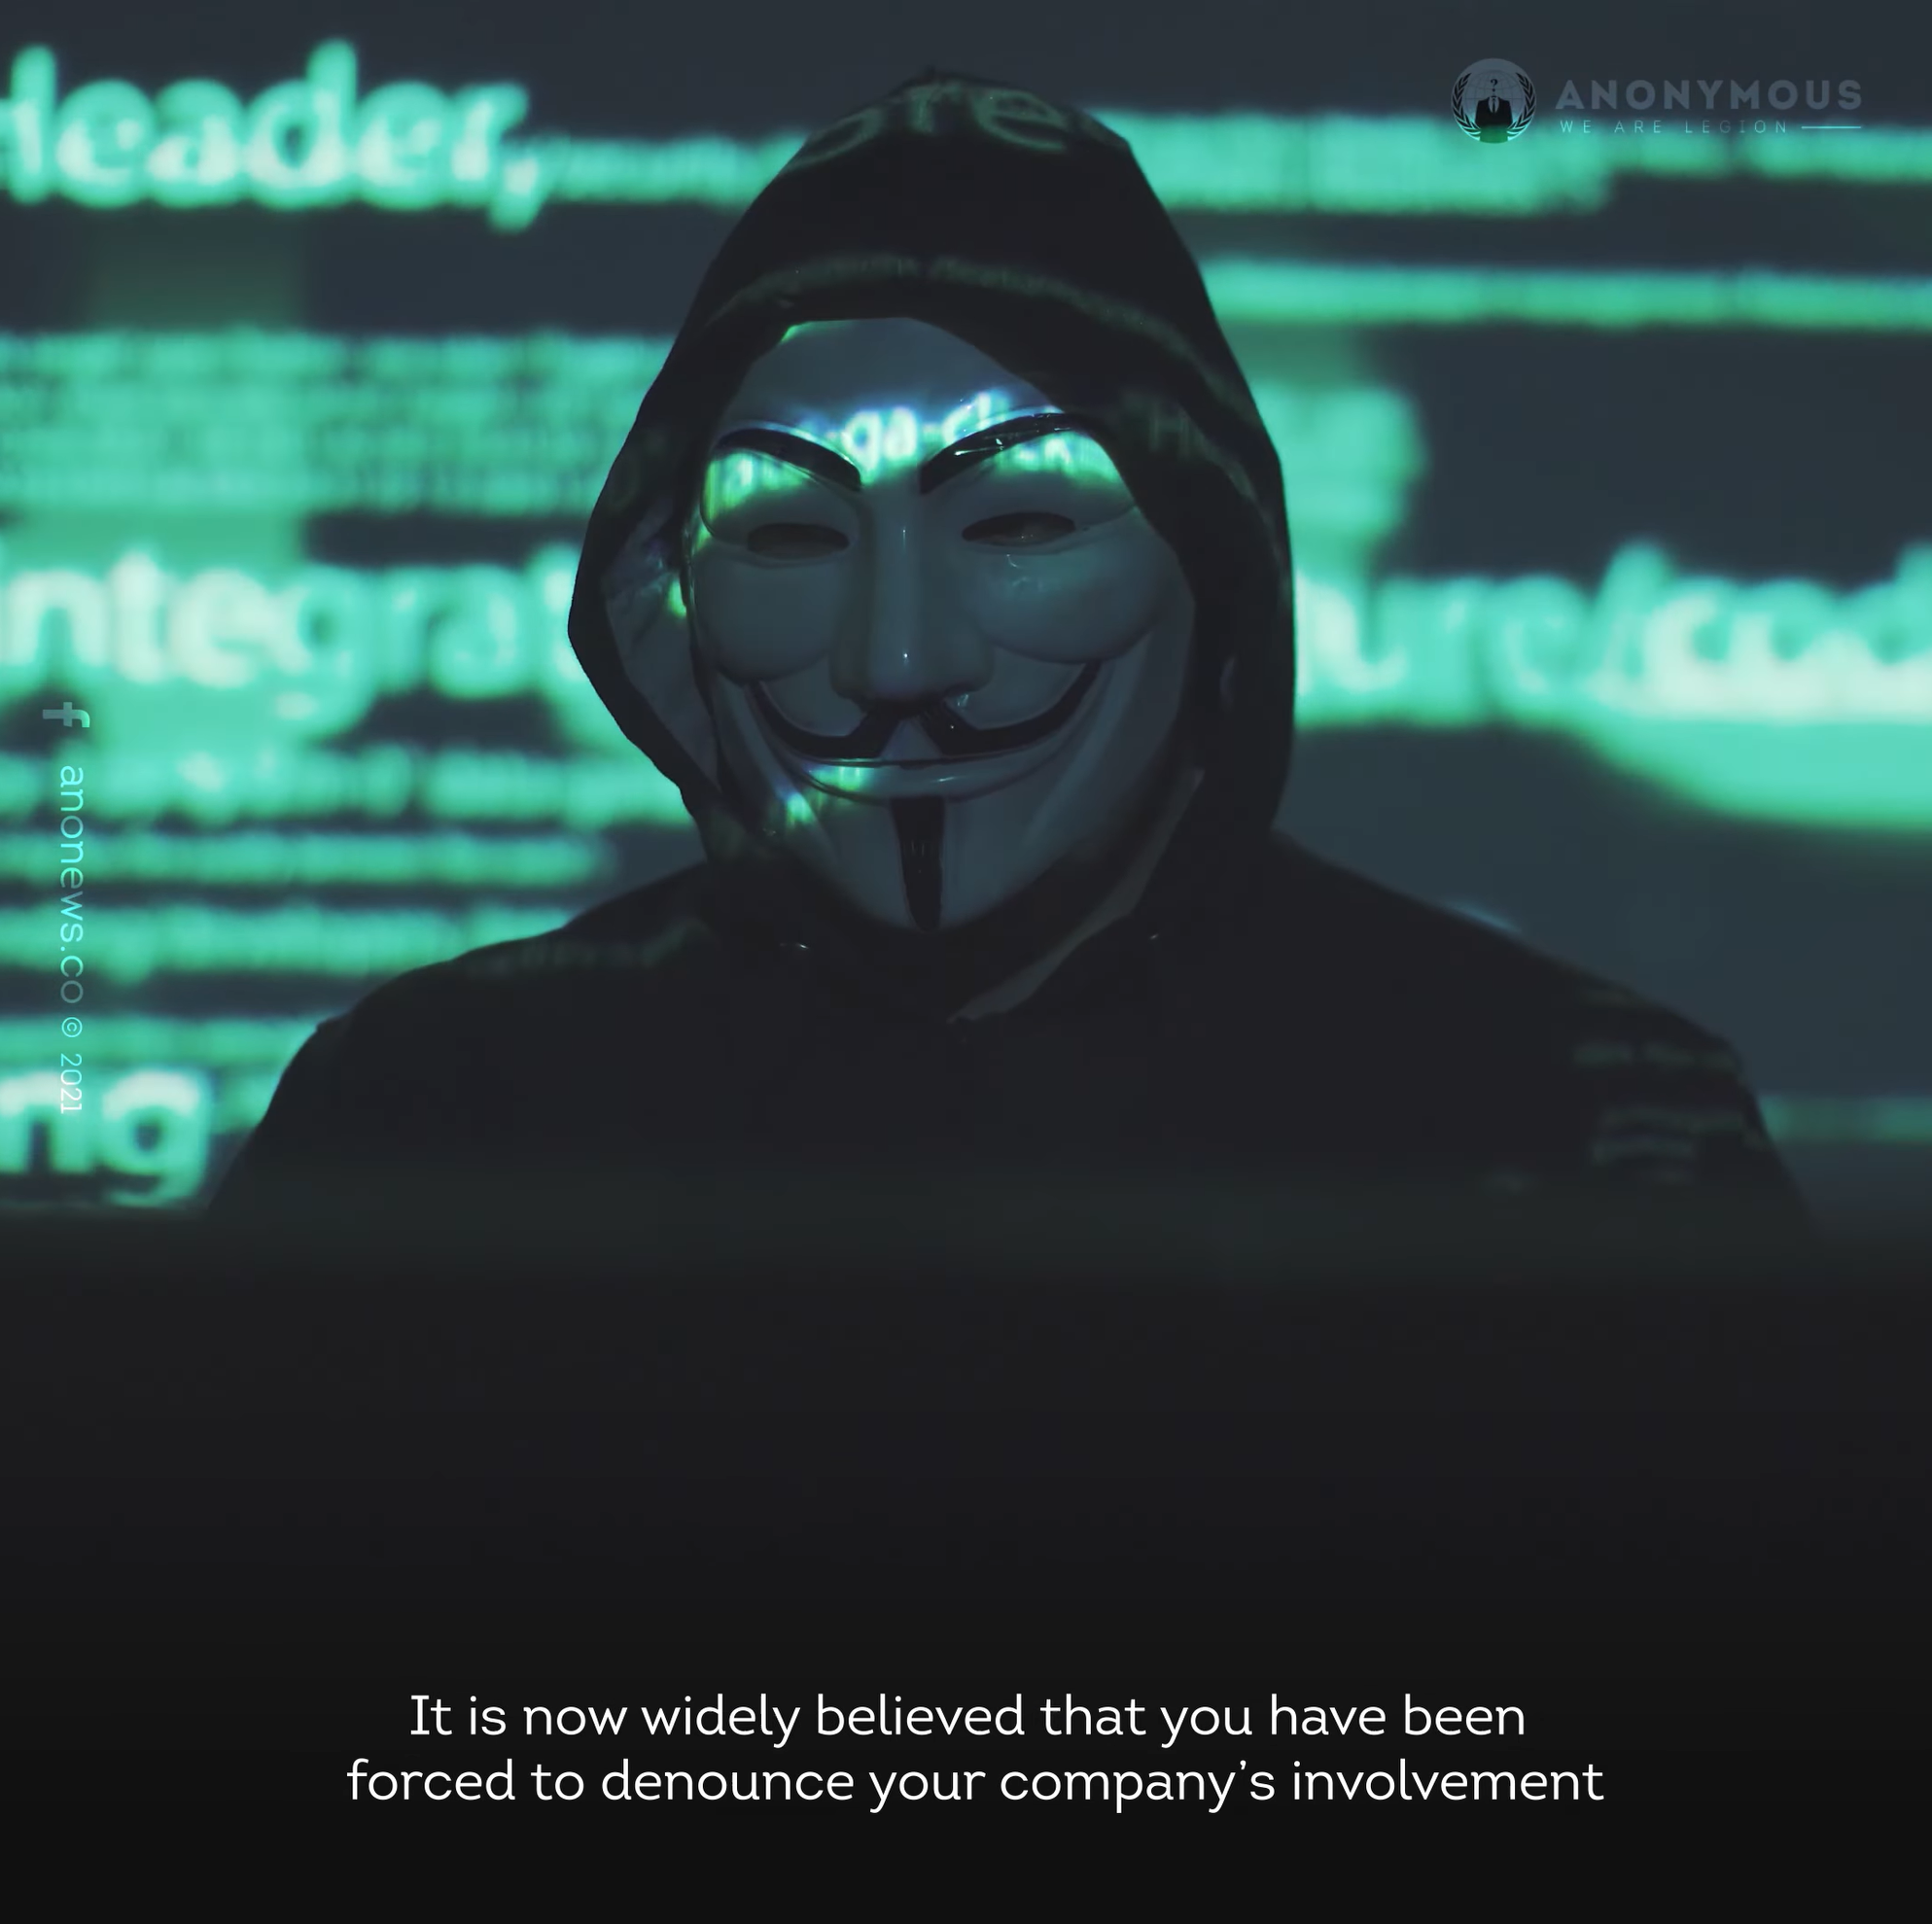 Anonymous sends a strongly worded message to Elon Musk